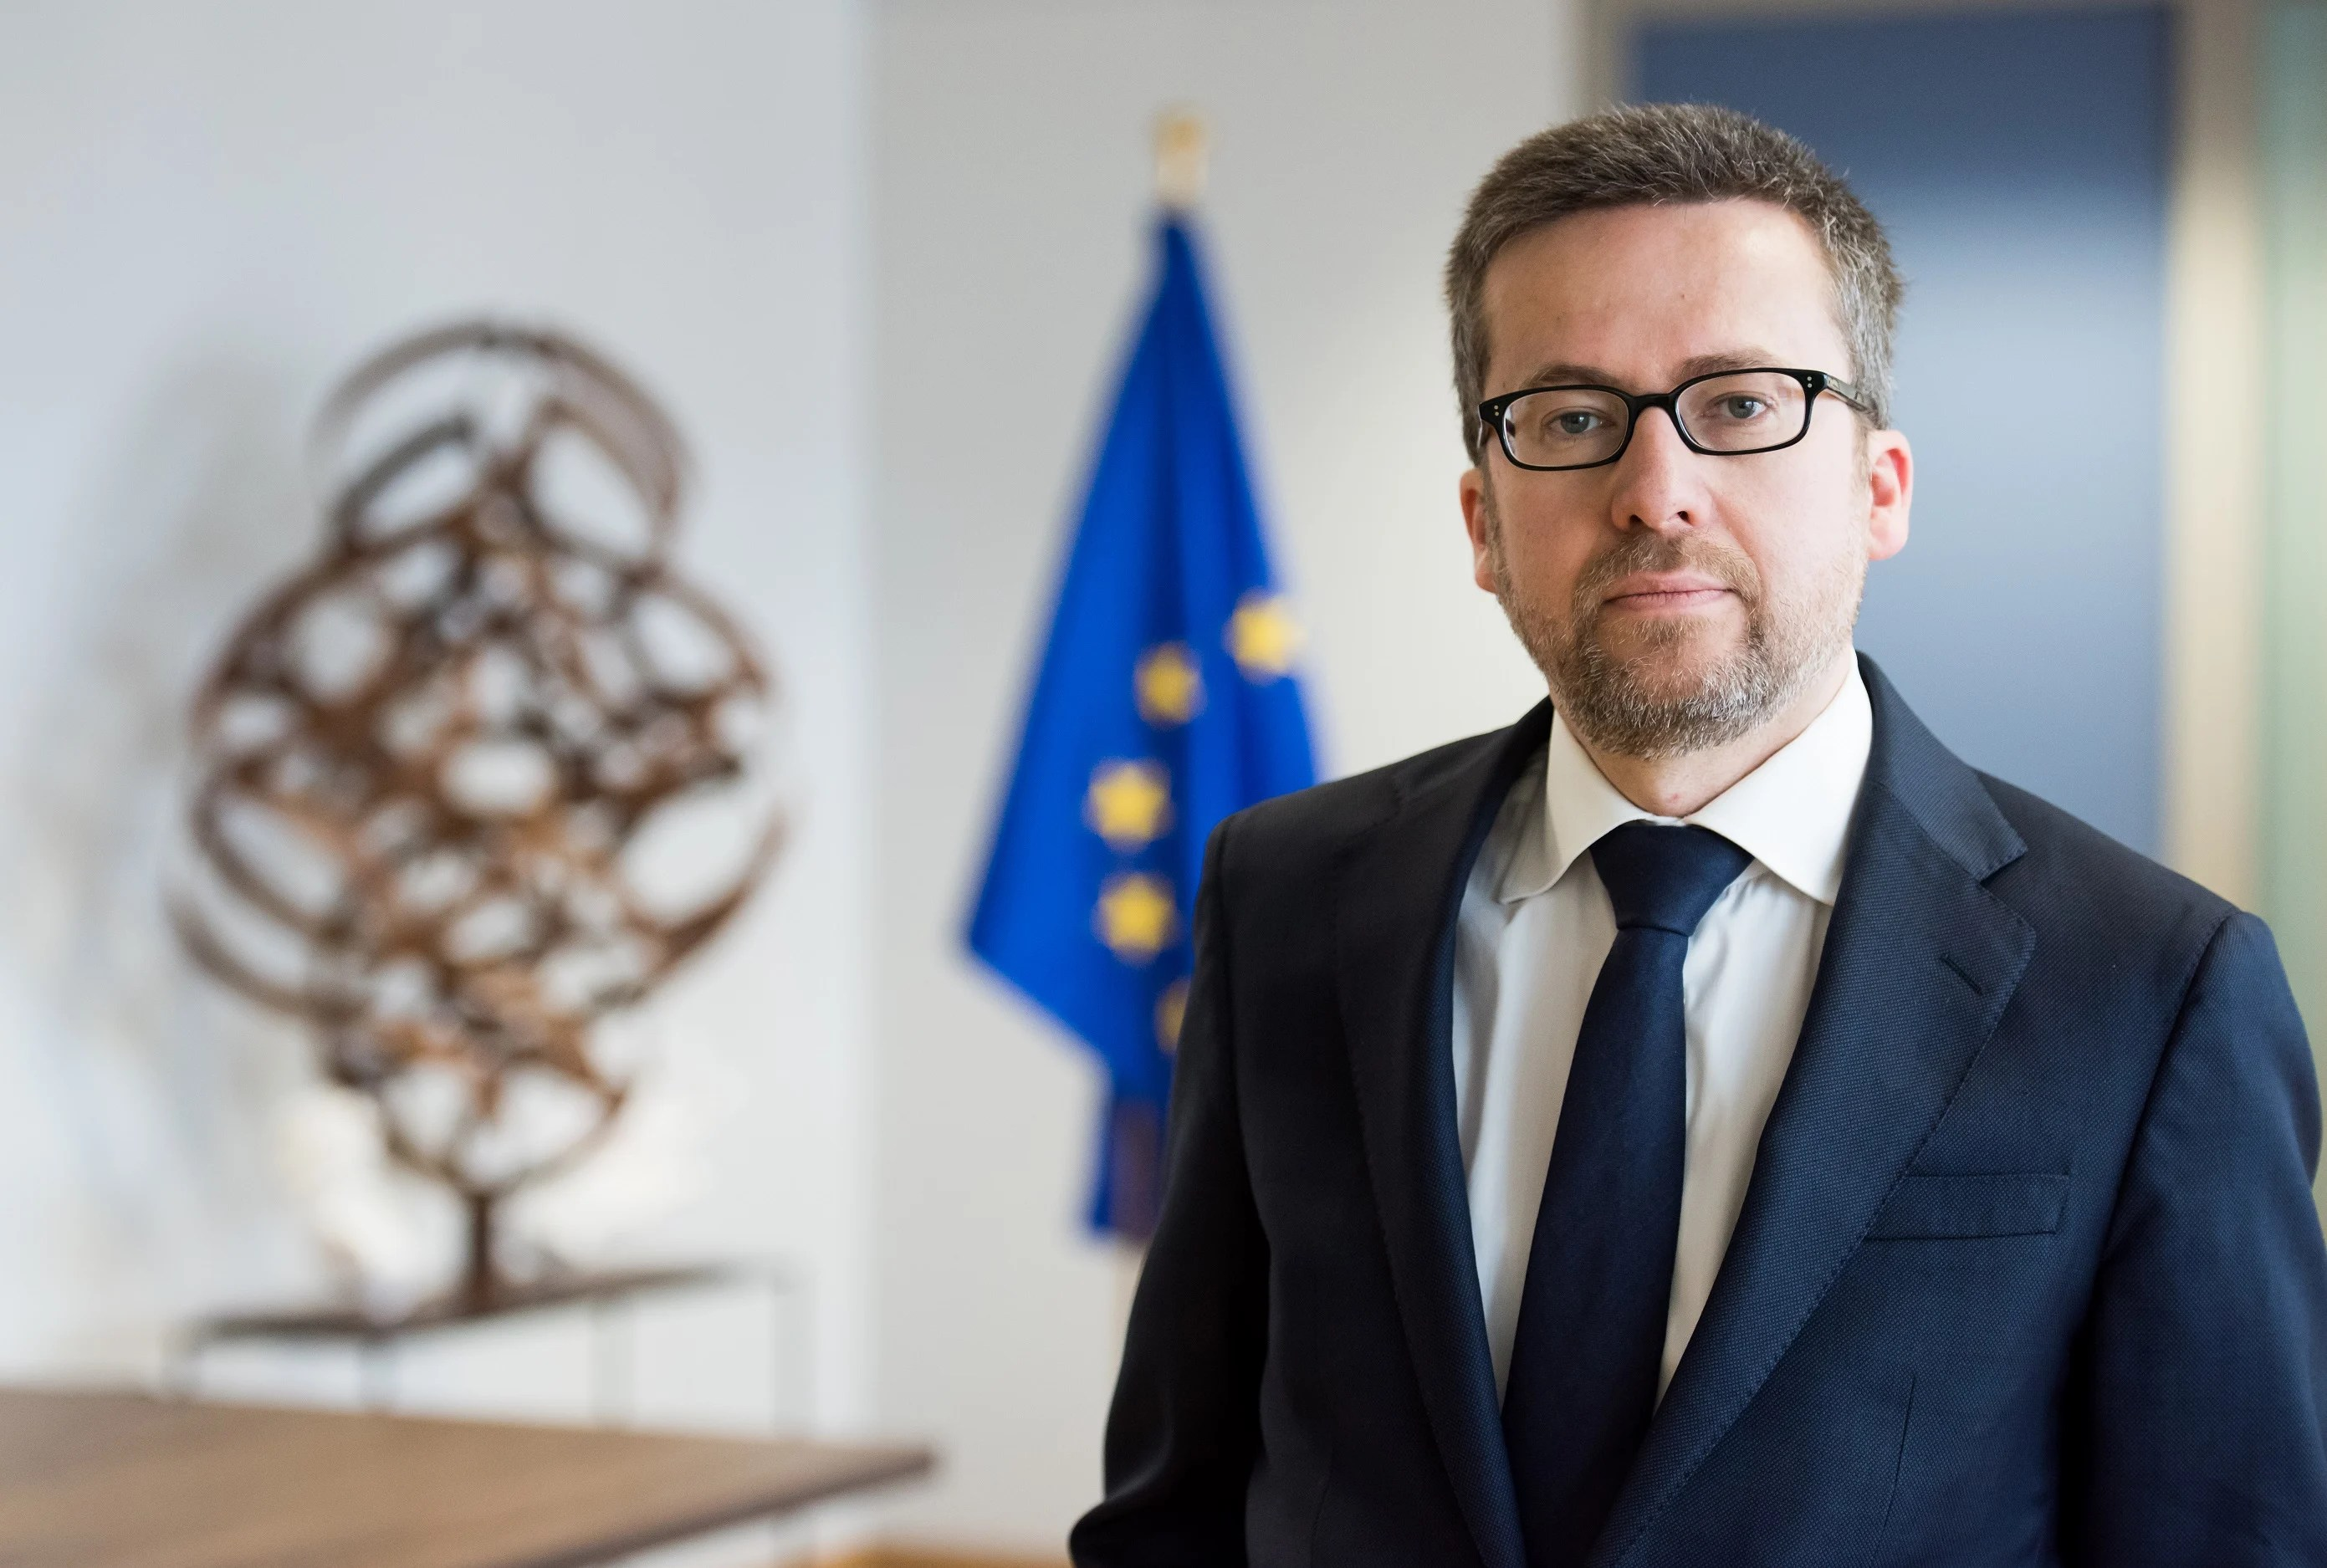 Commissioner Moedas launched proposals for the next European science and research funding programme, Horizon Europe, on 7 June.